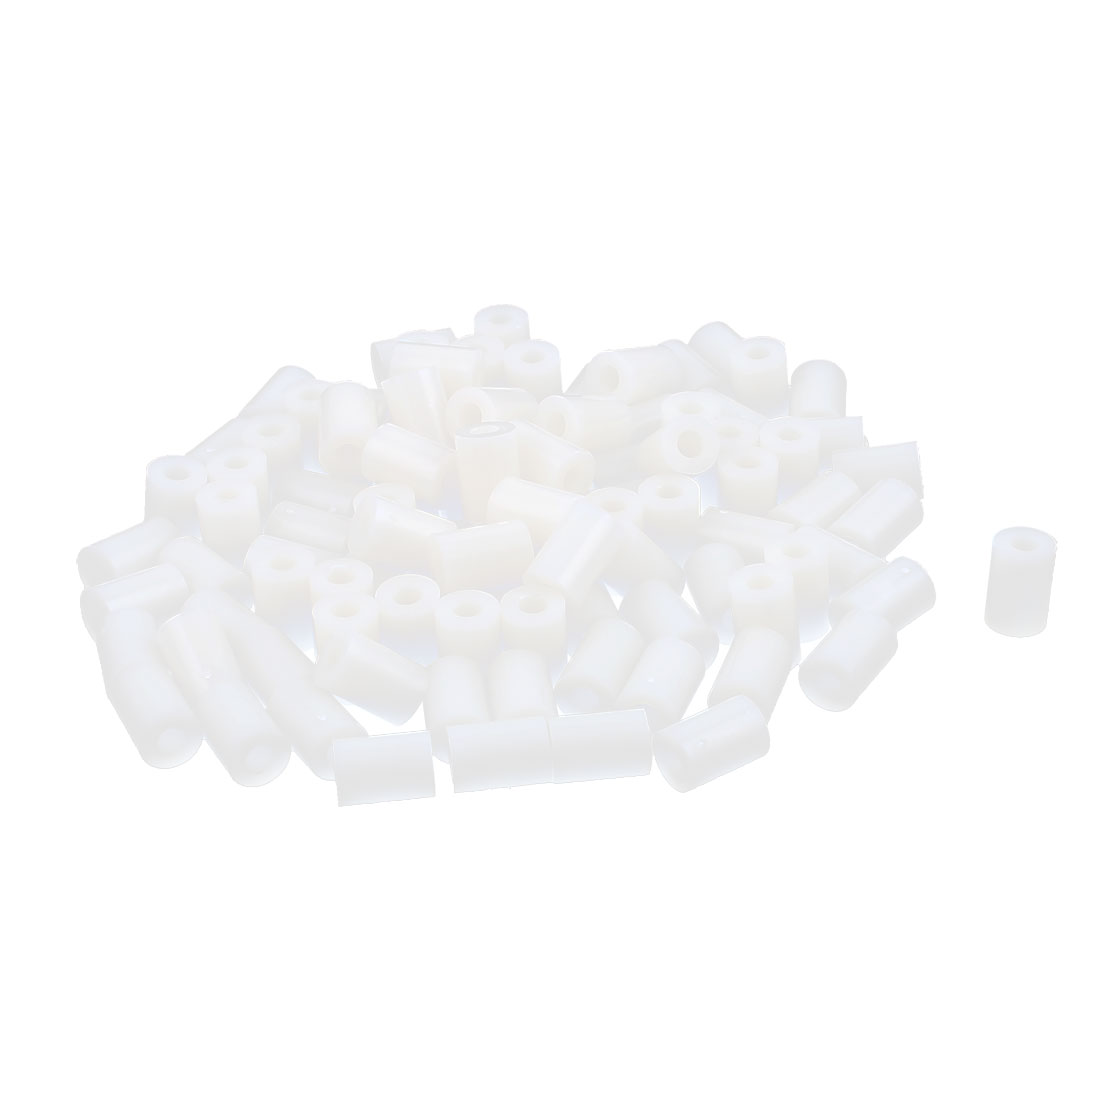 100 Pcs ABS Cylinder LED Spacer Holder Support M3 x 10mm Off-White